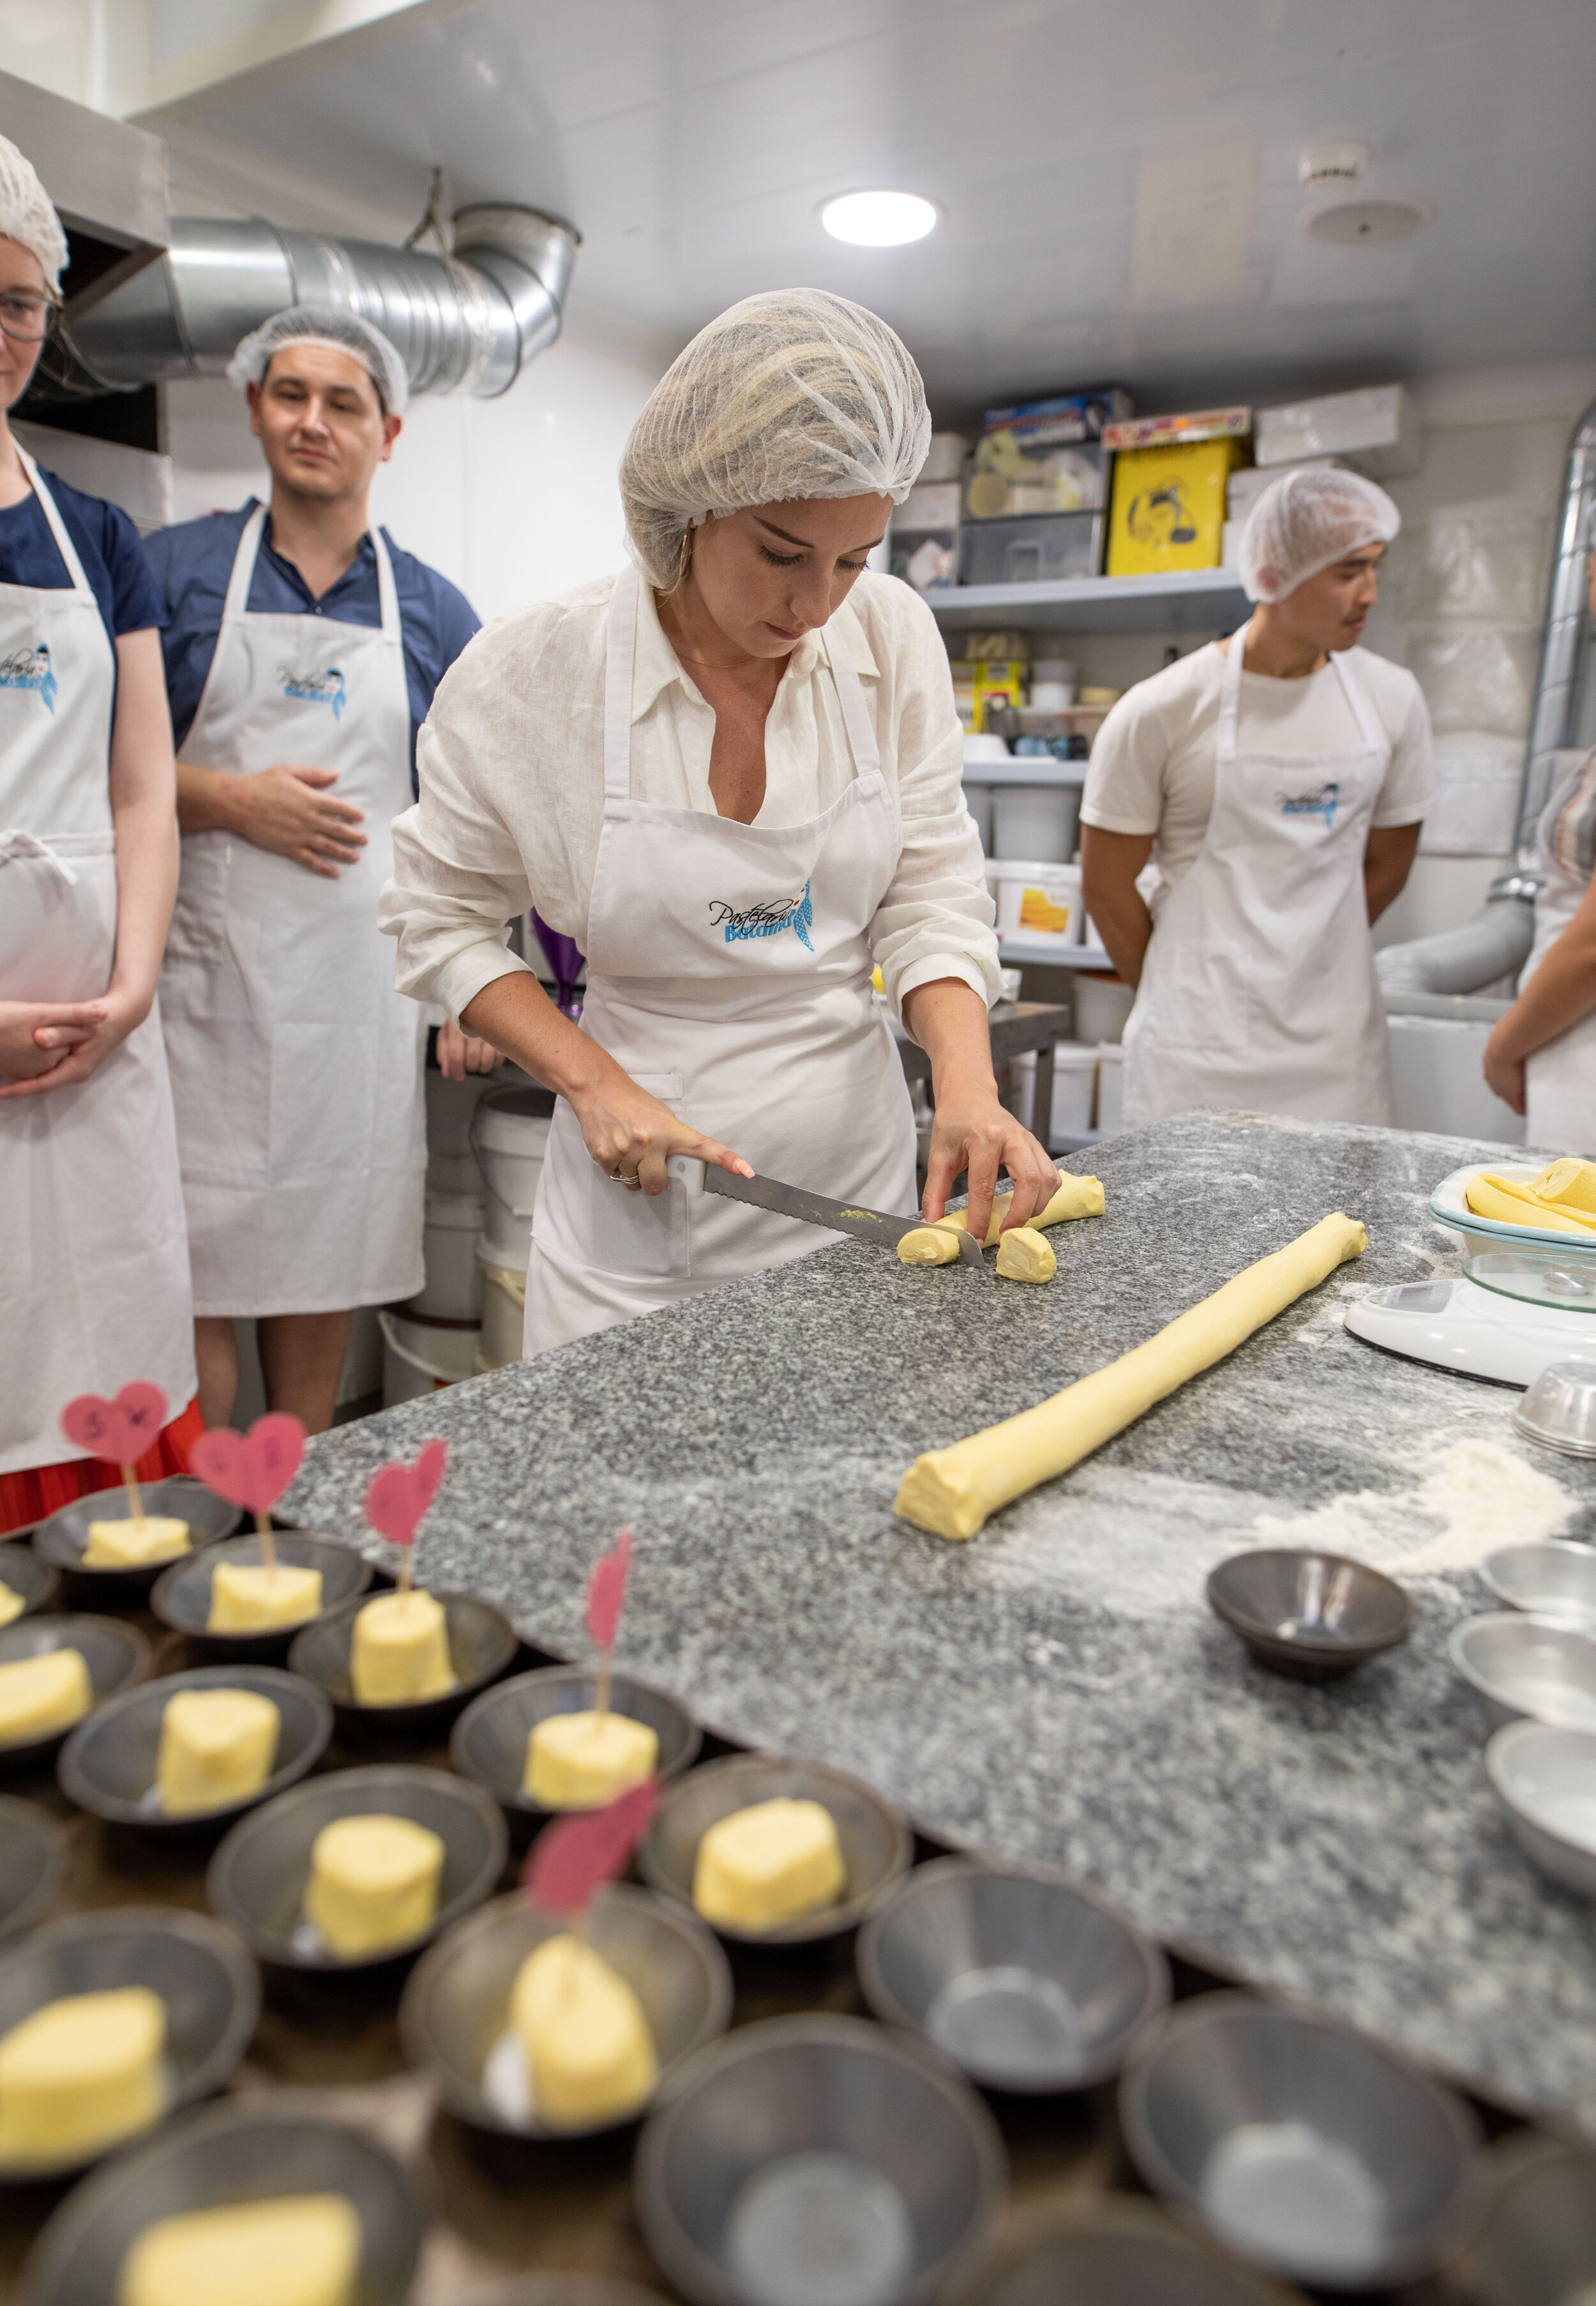 Me Cutting the dough, learning to make Pastel De Nata